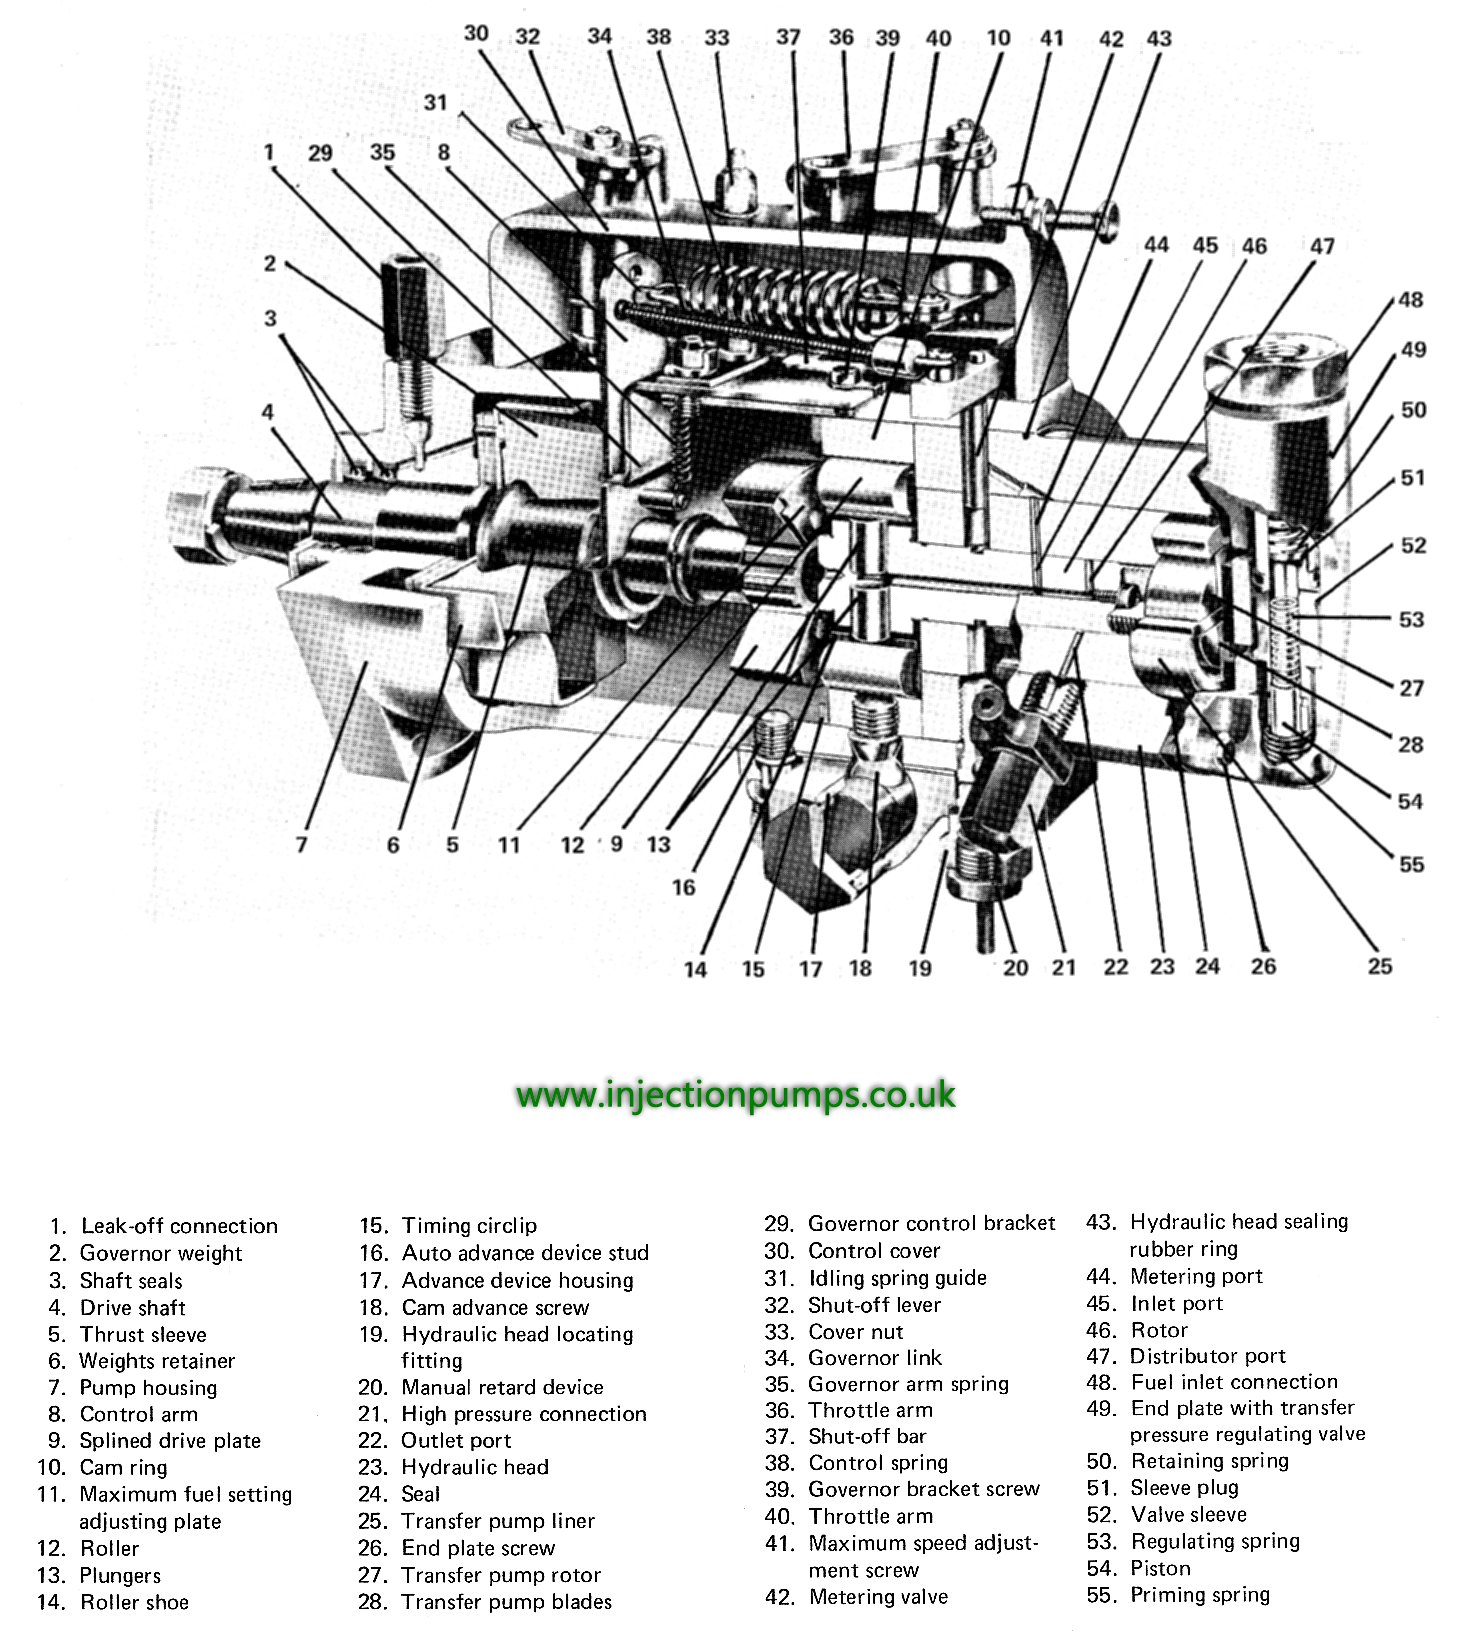 hight resolution of exploded diagrams diesel injection pumps lucas fuel injection pump parts lucas delphi dpc pumps